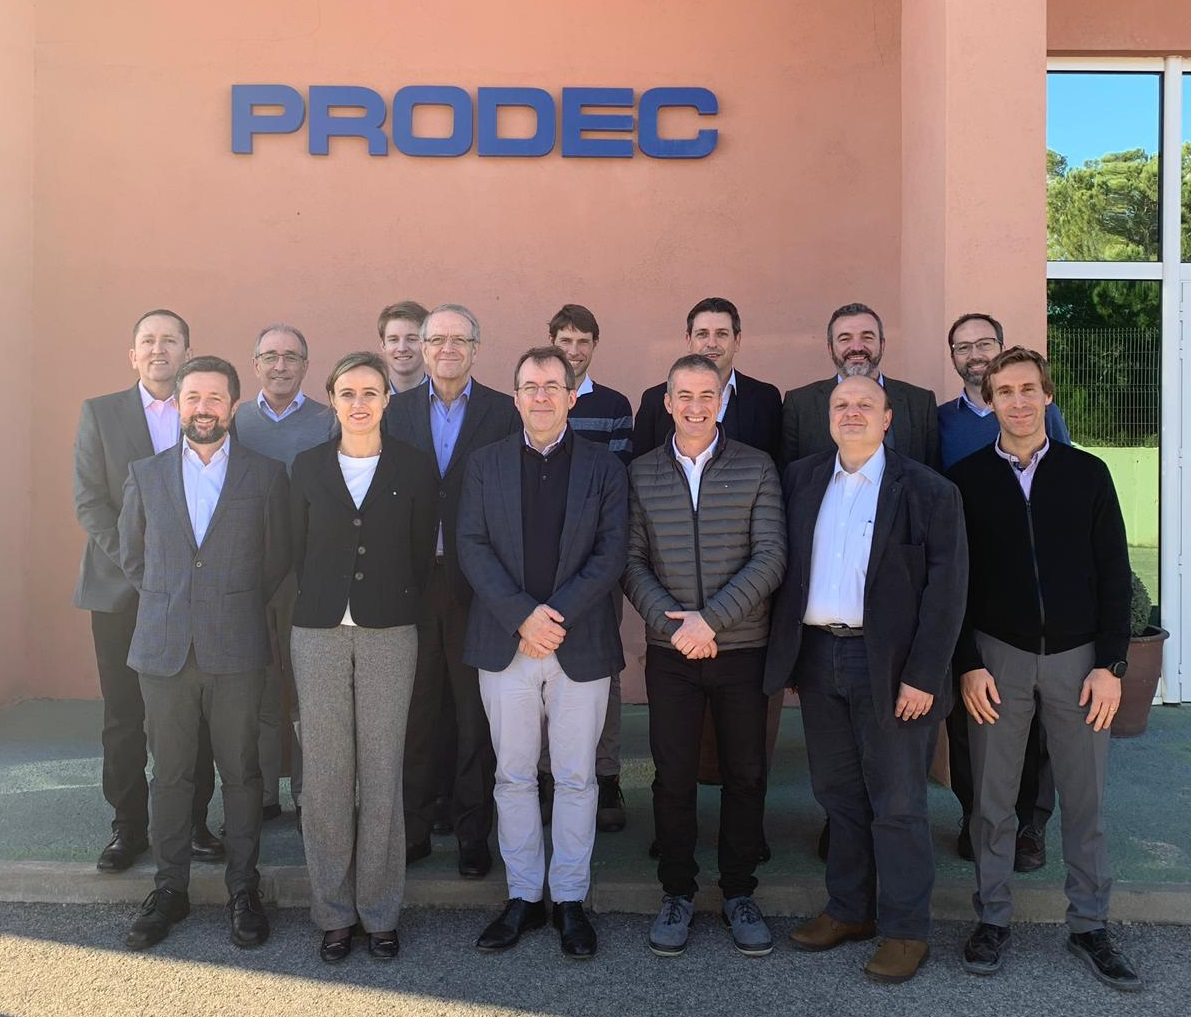 Sinterpack & Prodec join their strengths to compete worldwide providing complete end-of-line solutions